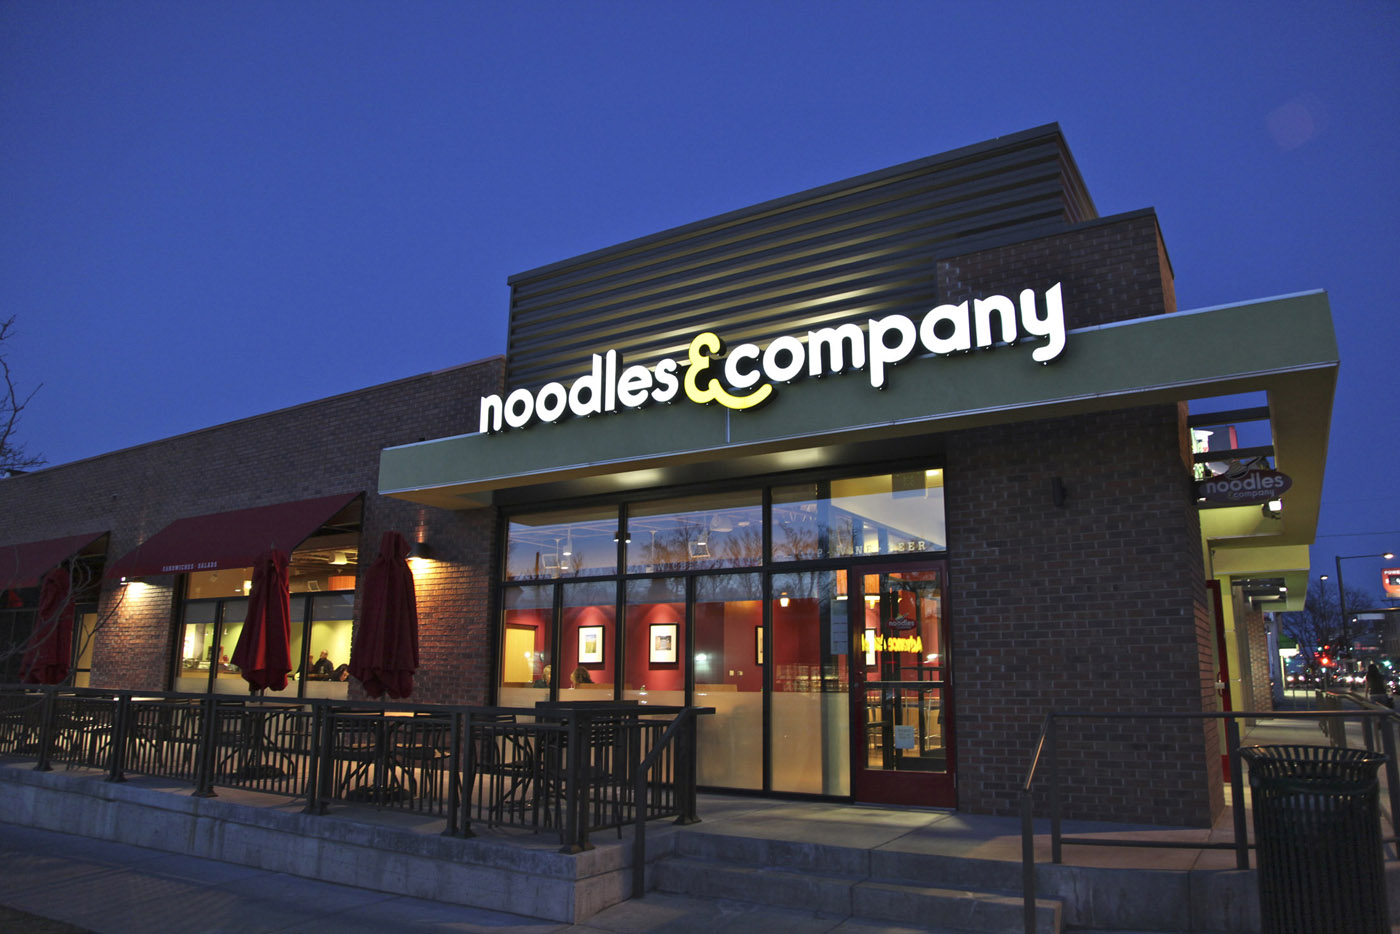 A top Noodles & Co. executive is resigning to become CEO of a hot dog purveyor.